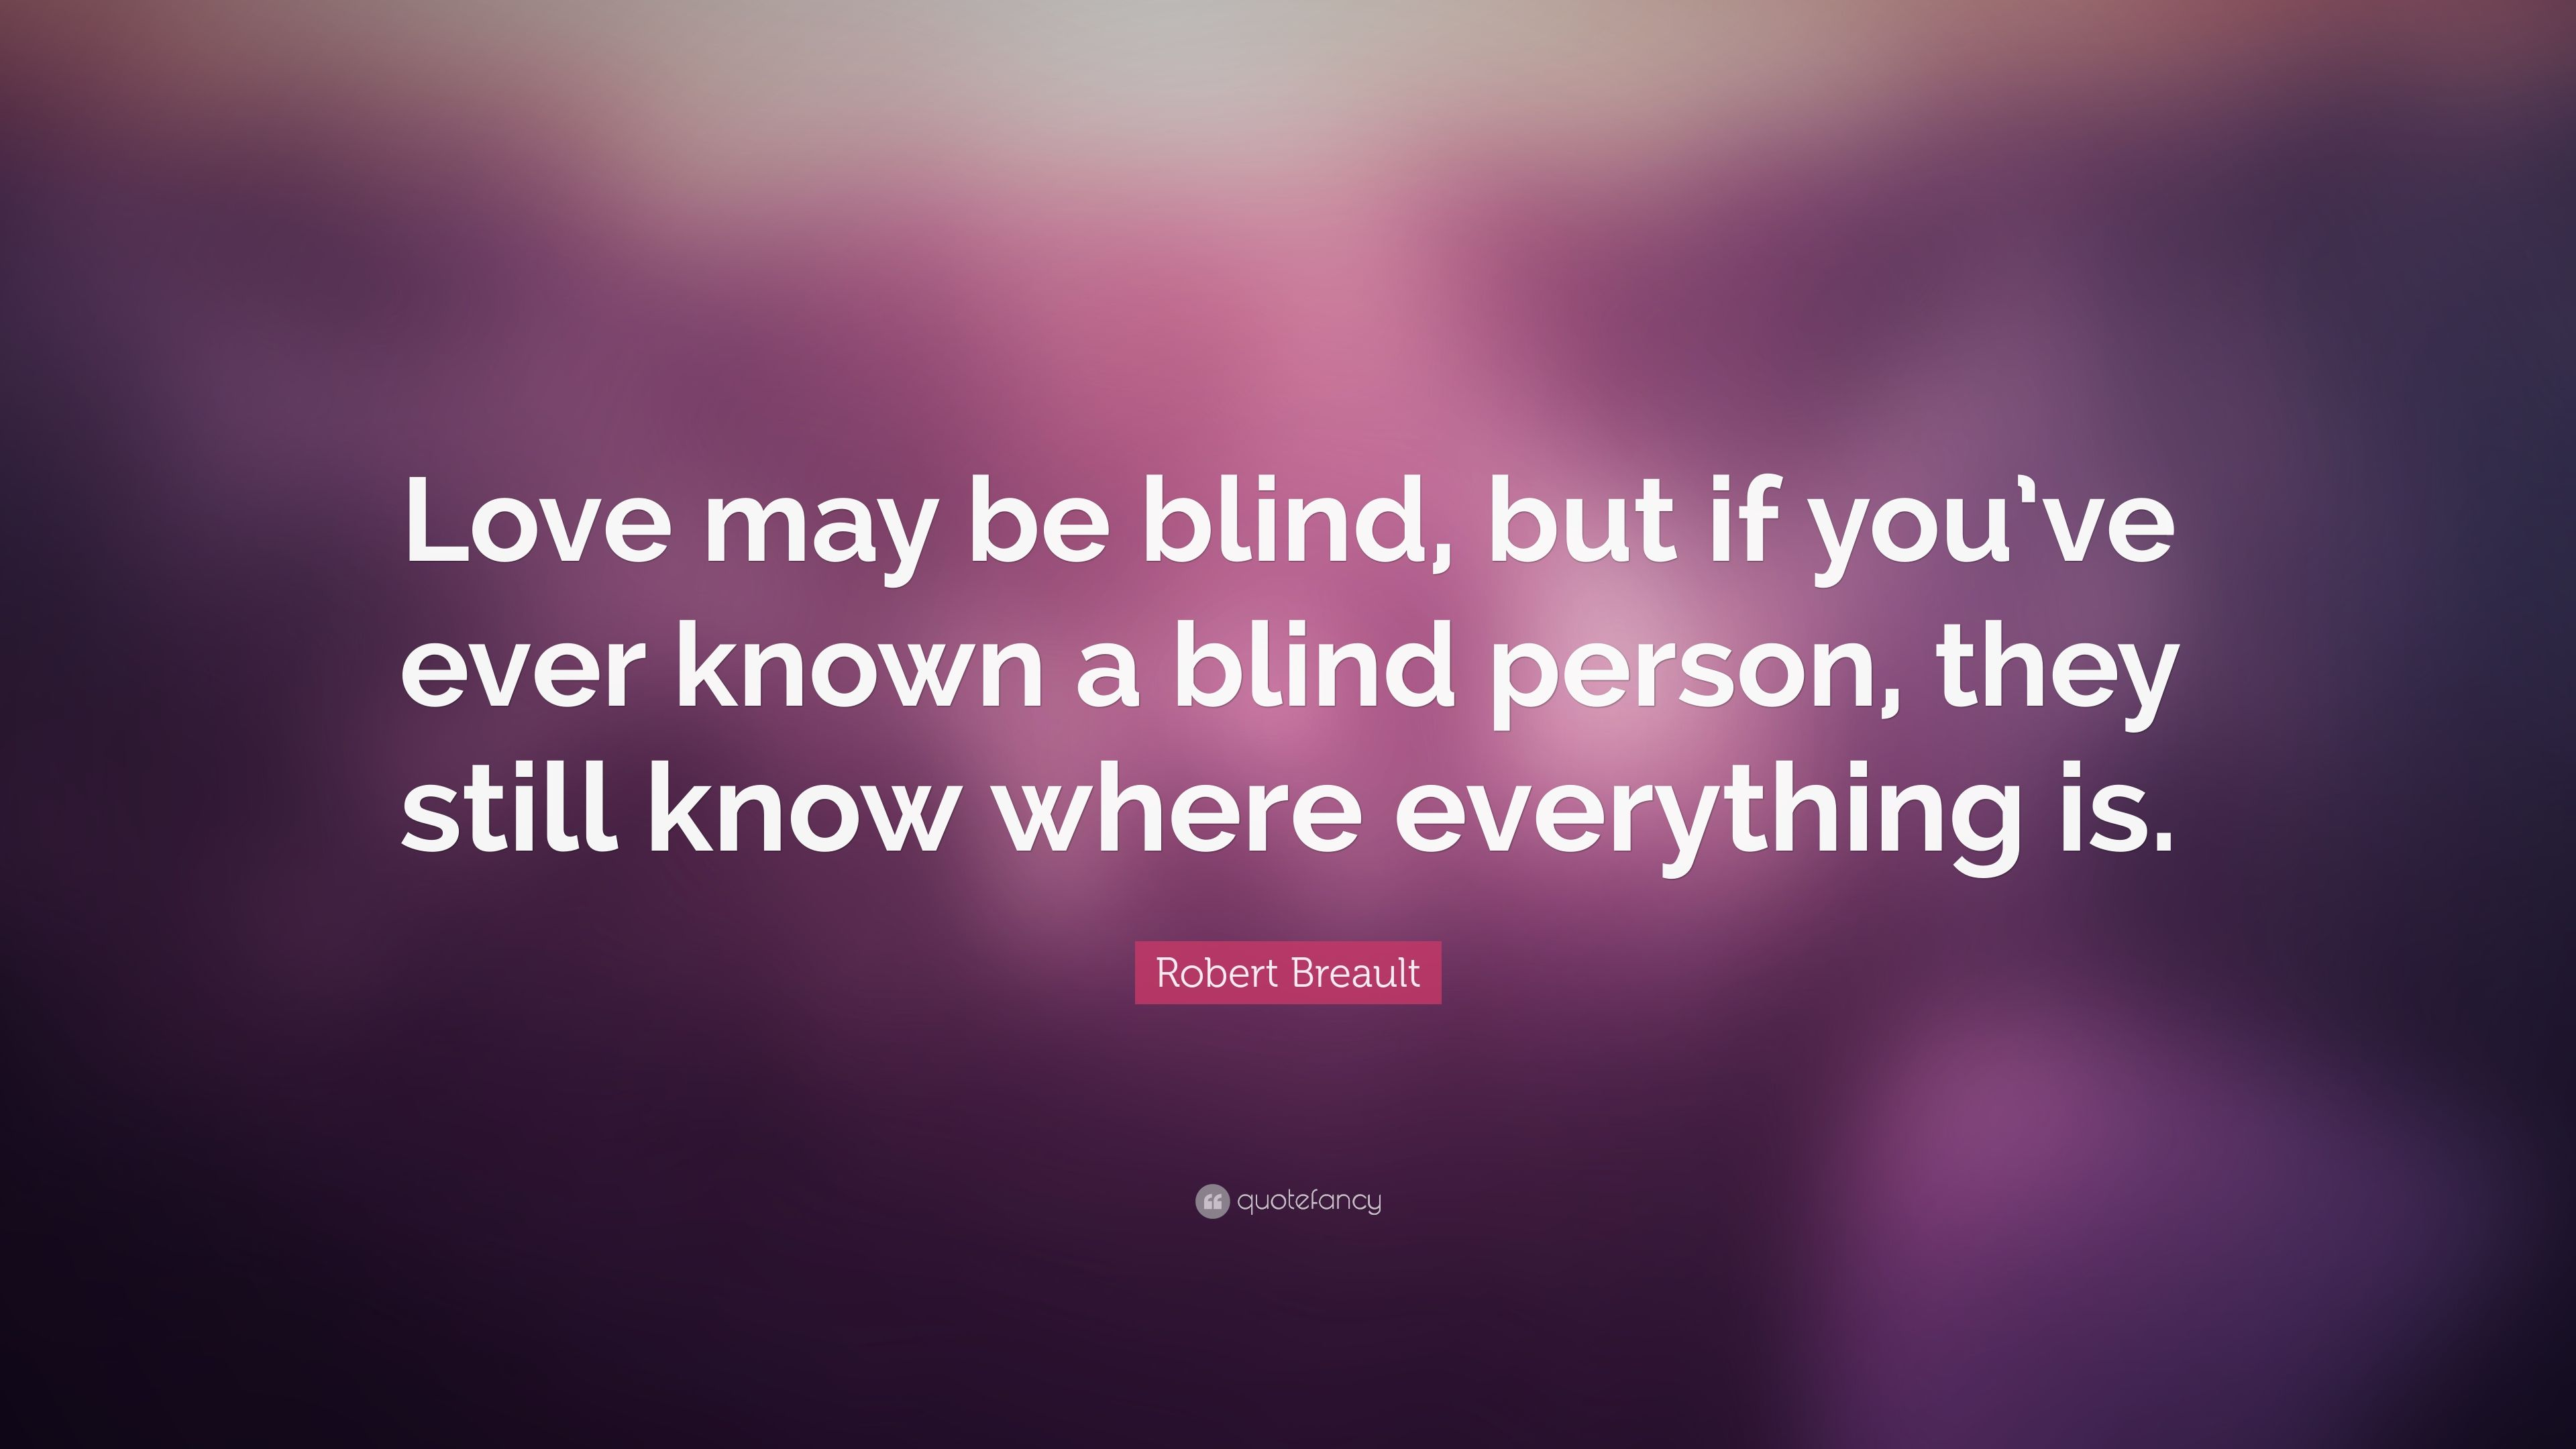 Perfect Robert Breault Quote: U201cLove May Be Blind, But If Youu0027ve Ever